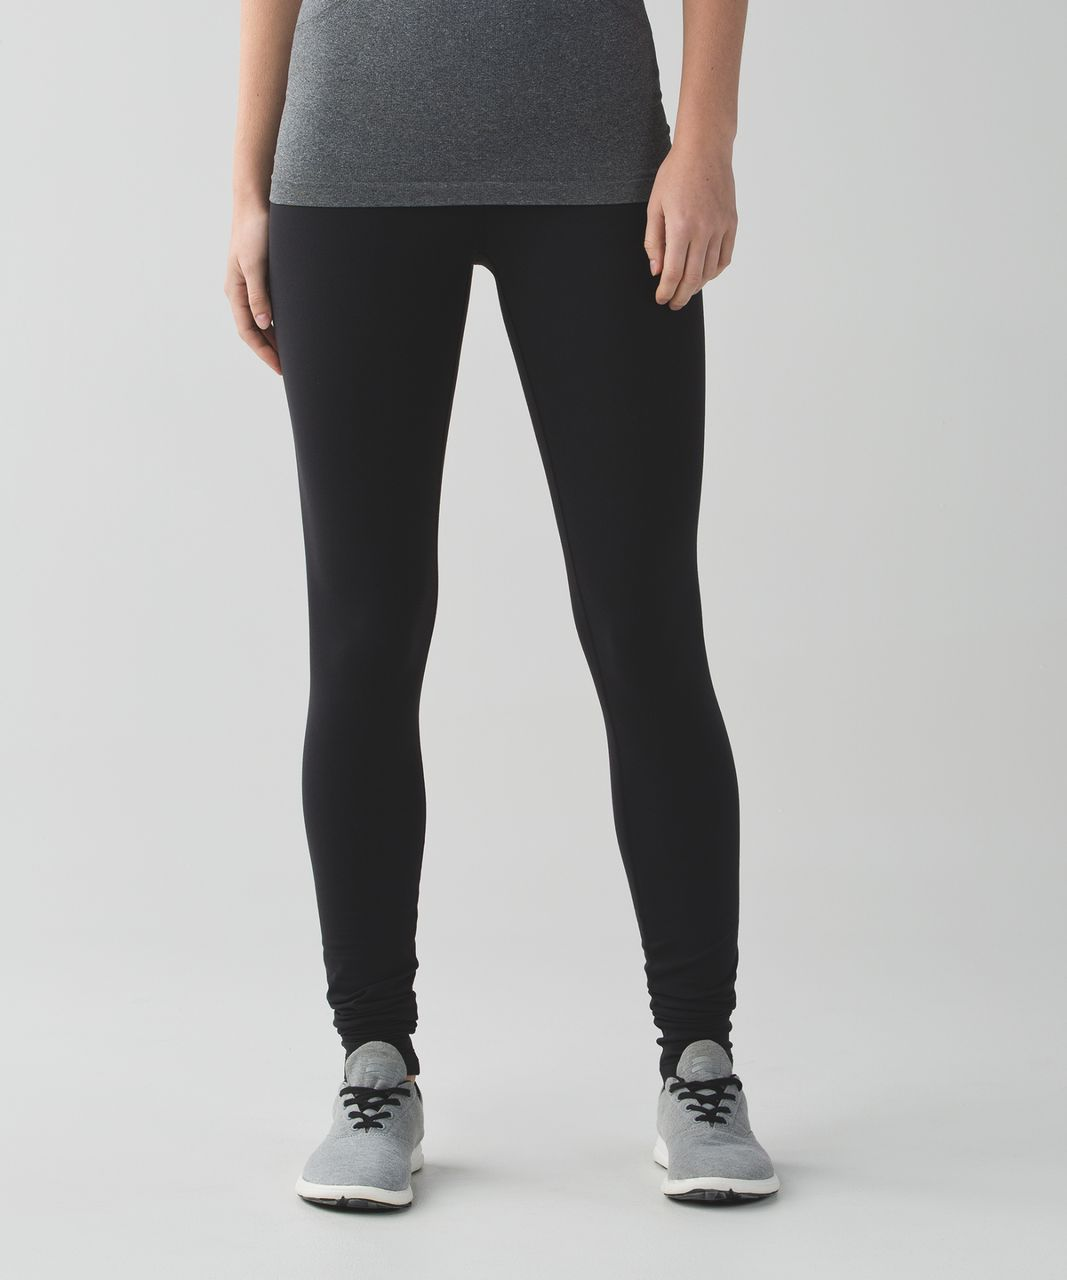 Lululemon Wunder Under Pant (Hi-Rise) (Brushed) - Black (First Release)